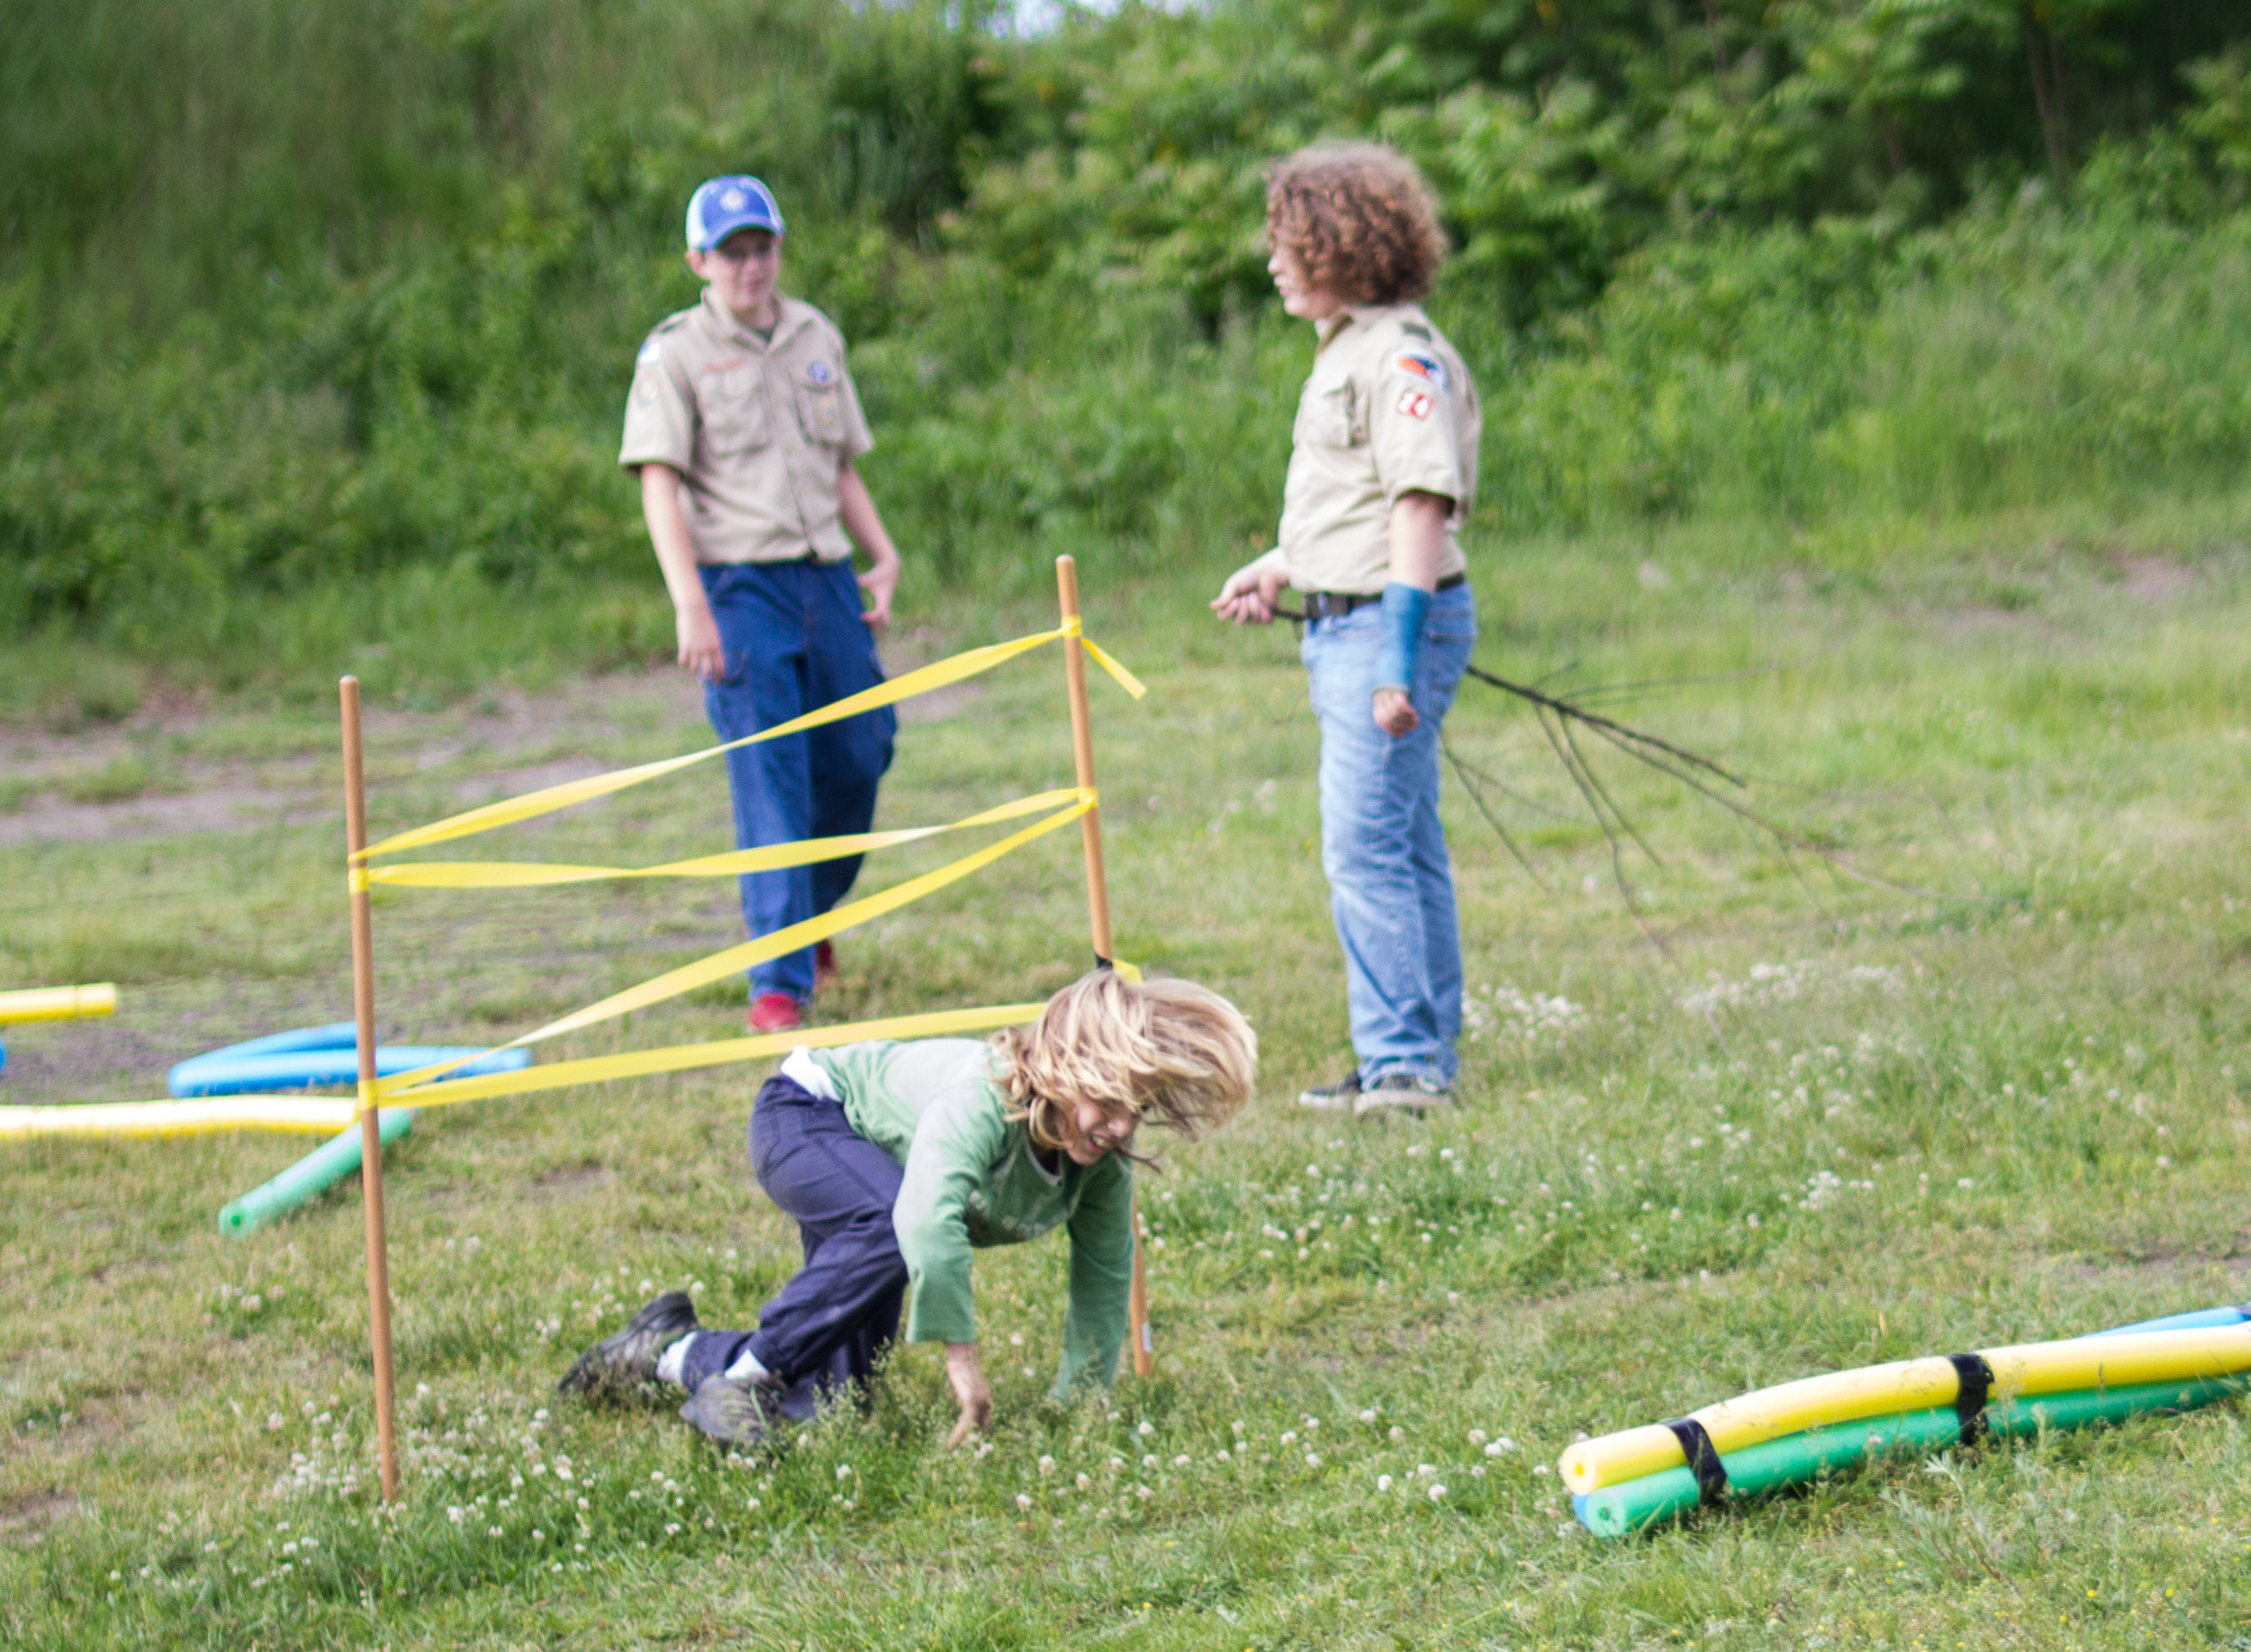 Cub Scouts Obstacle Course_09.jpg